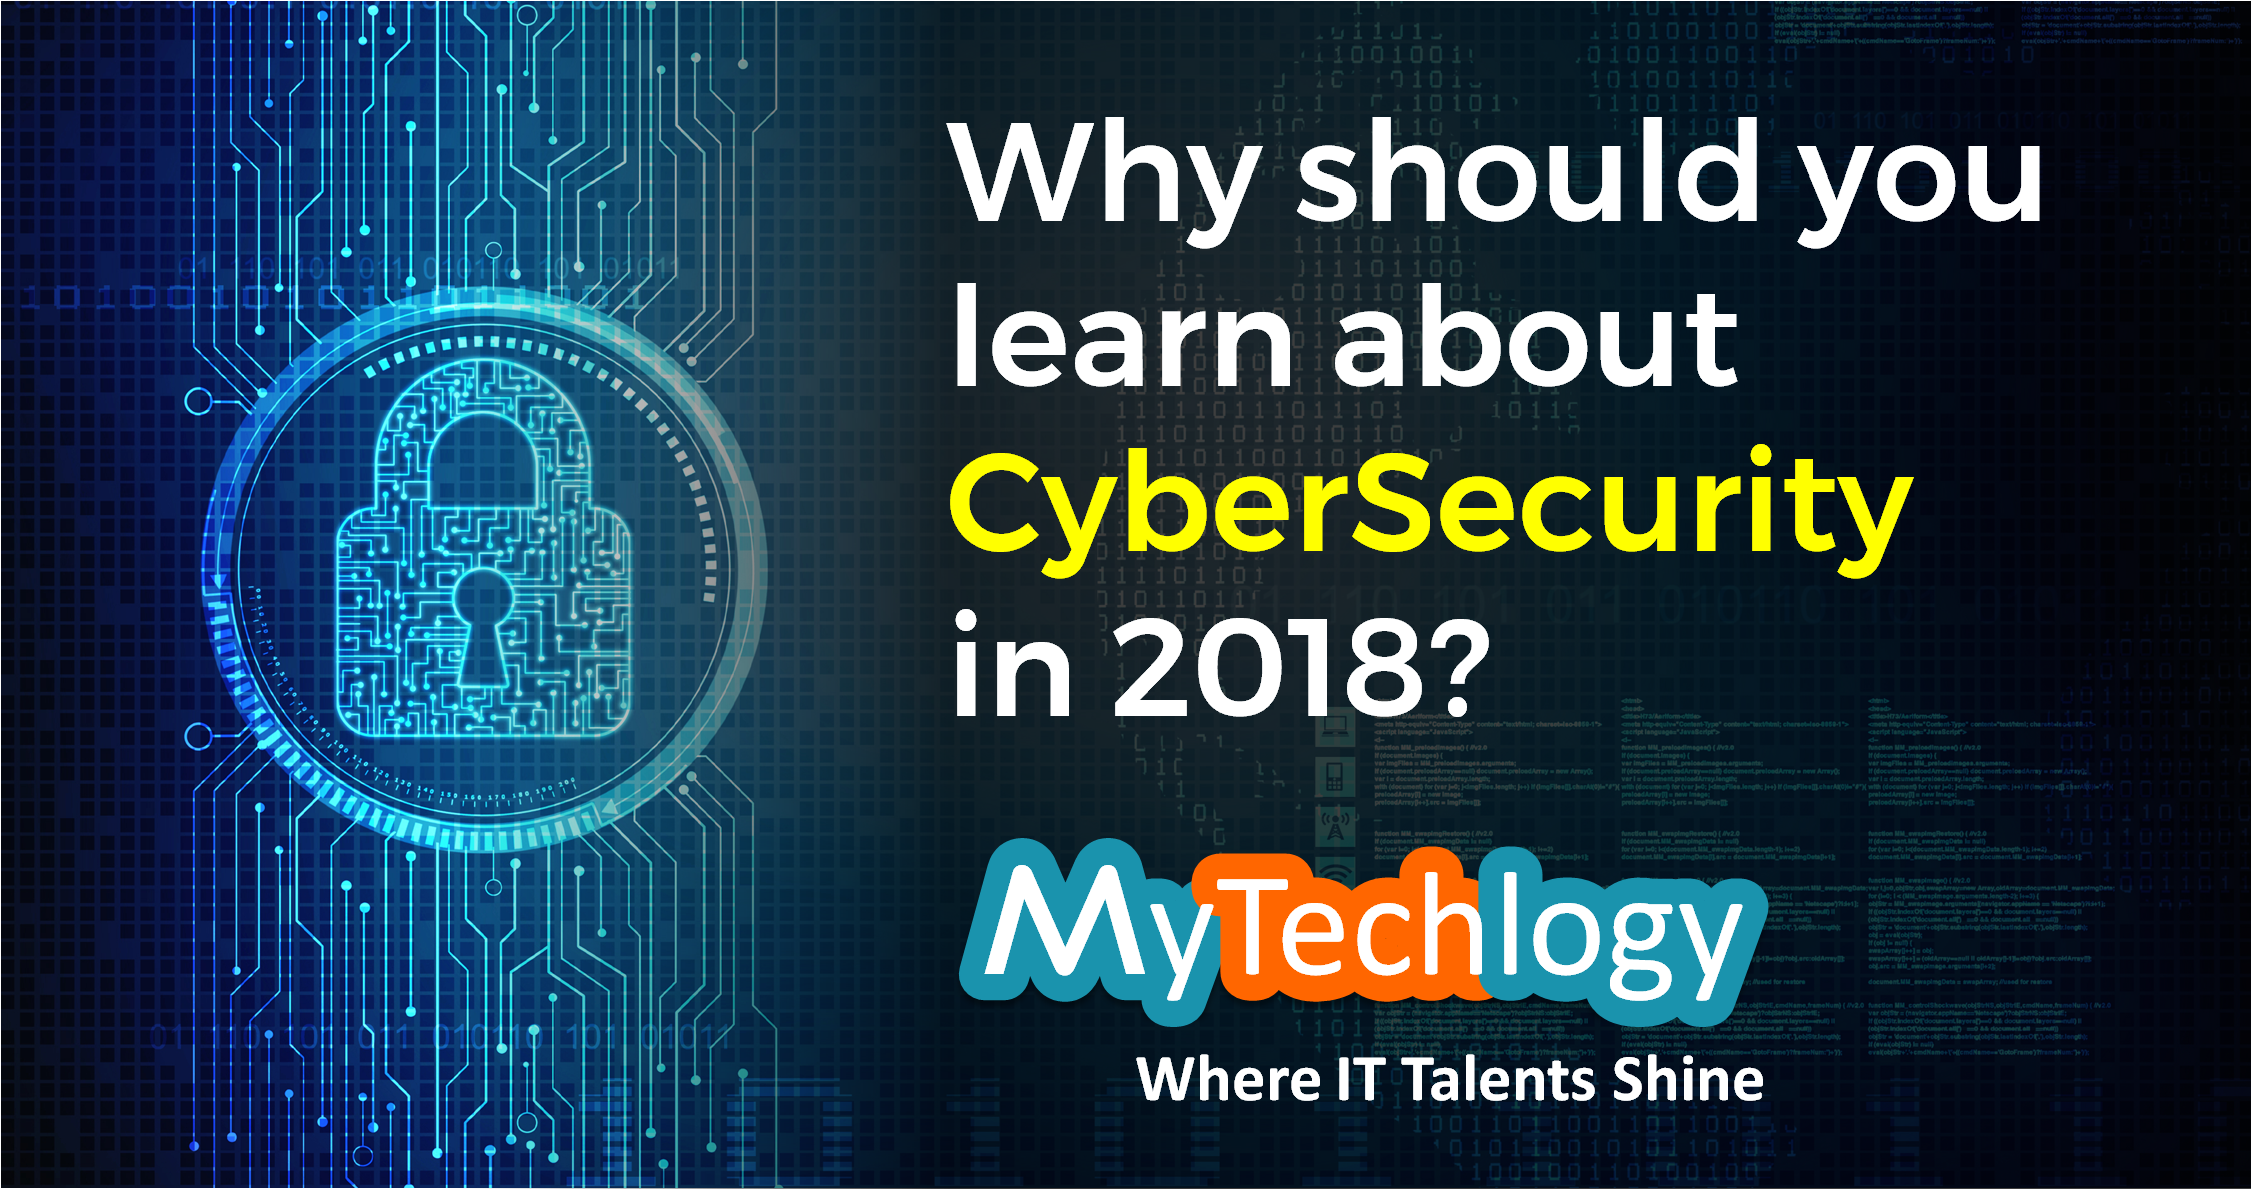 Why Should You Learn About Cybersecurity In 2018 - Image 1